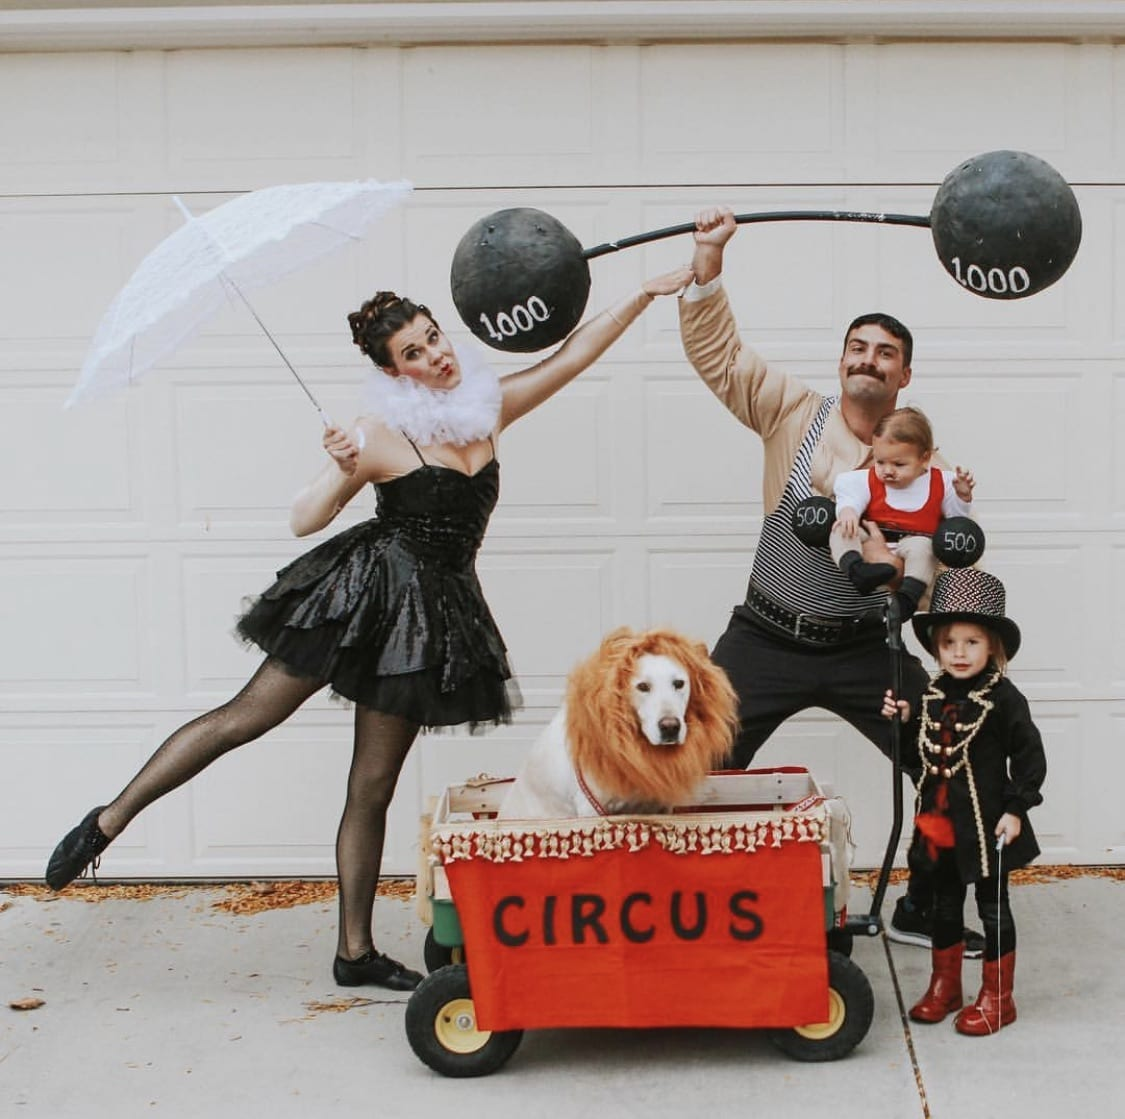 Family dressed up as circus characters for Halloween.